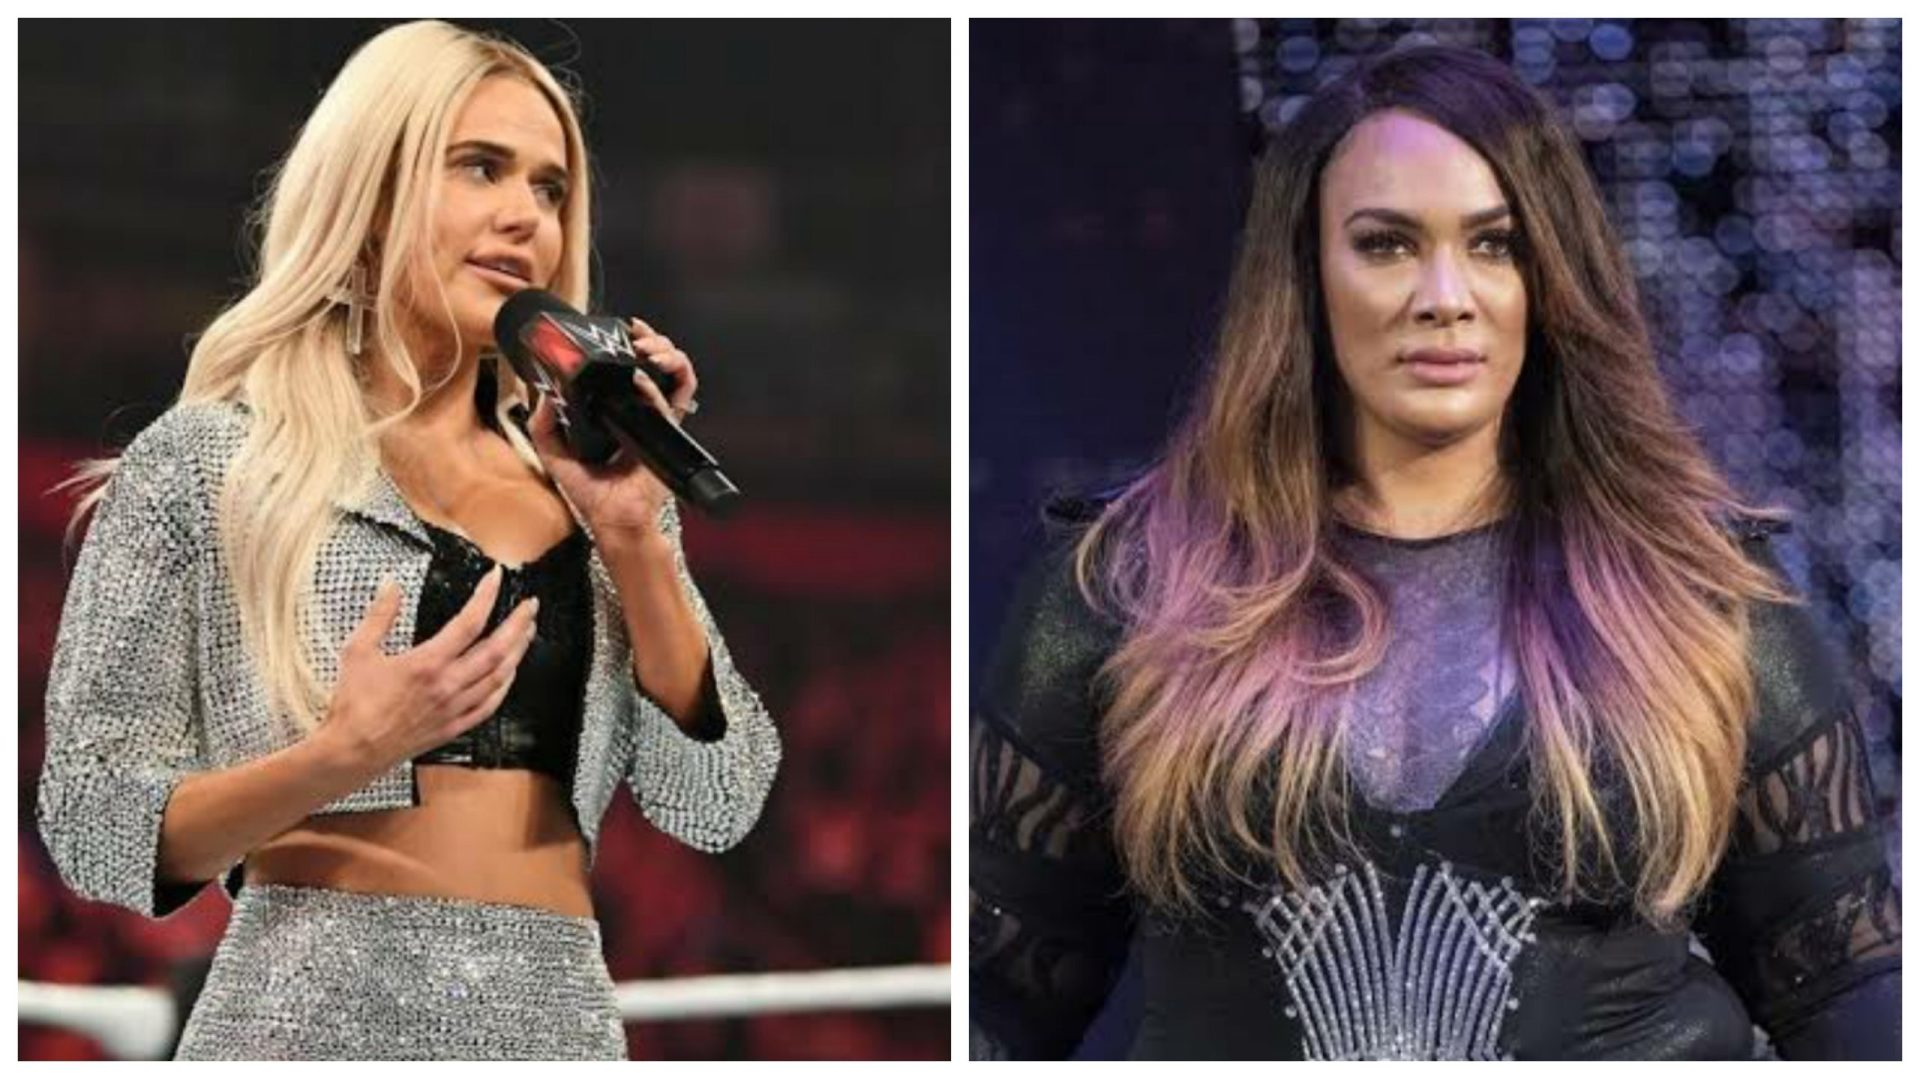 WWE's Lana claims praying every time before facing Nia Jax - THE SPORTS ROOM